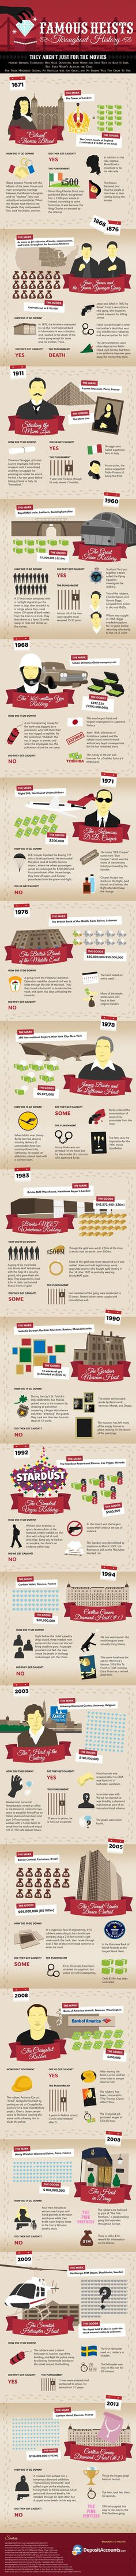 Interesting infographic about the Greatest Financial Heists in history from bank robberies to art, gold and jewel heists.